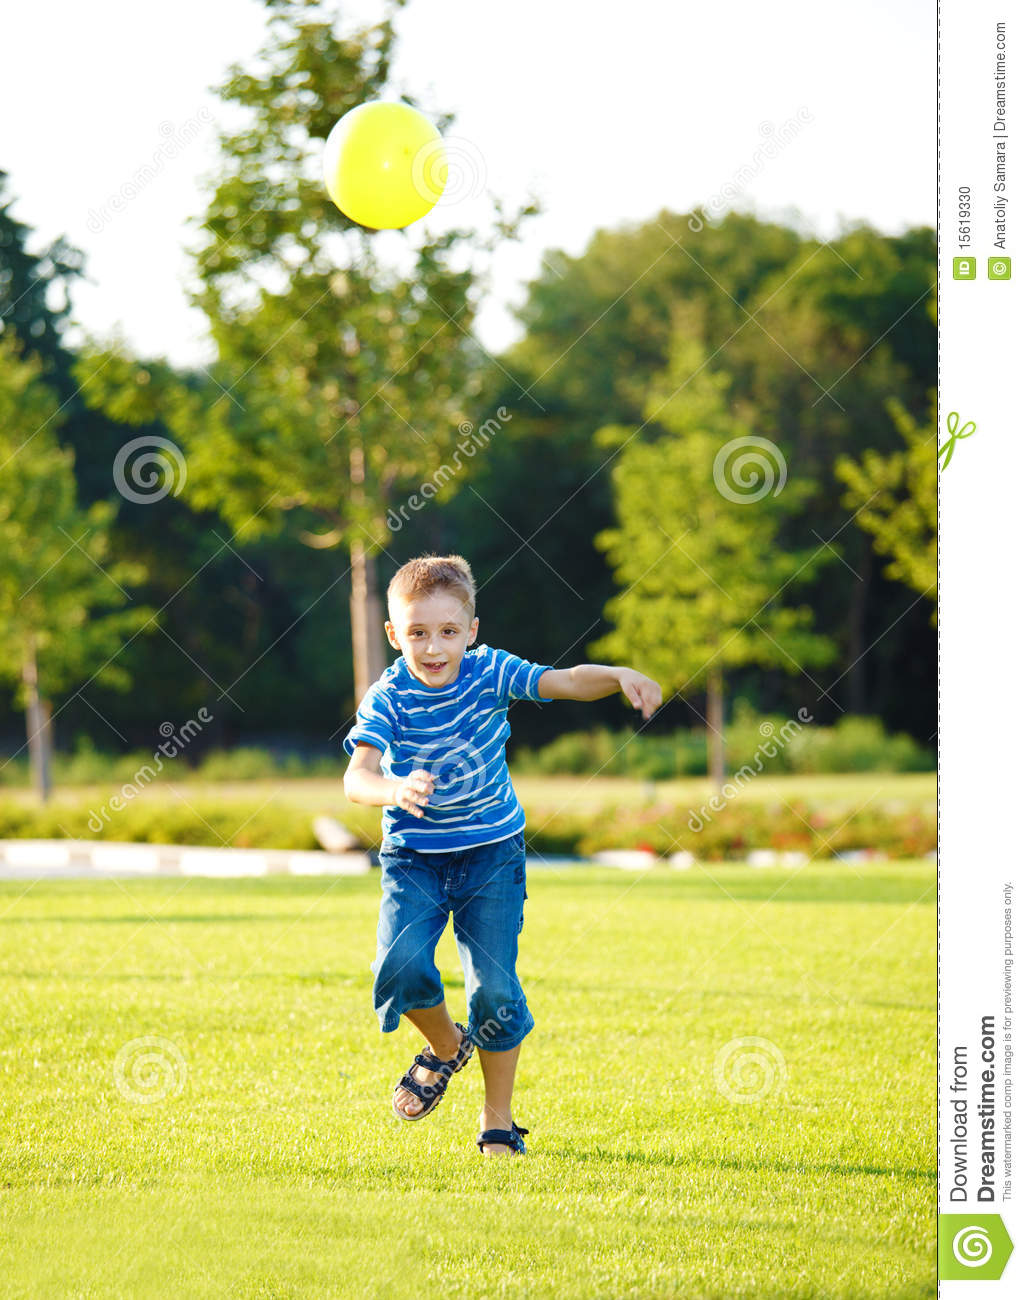 Boy with ball